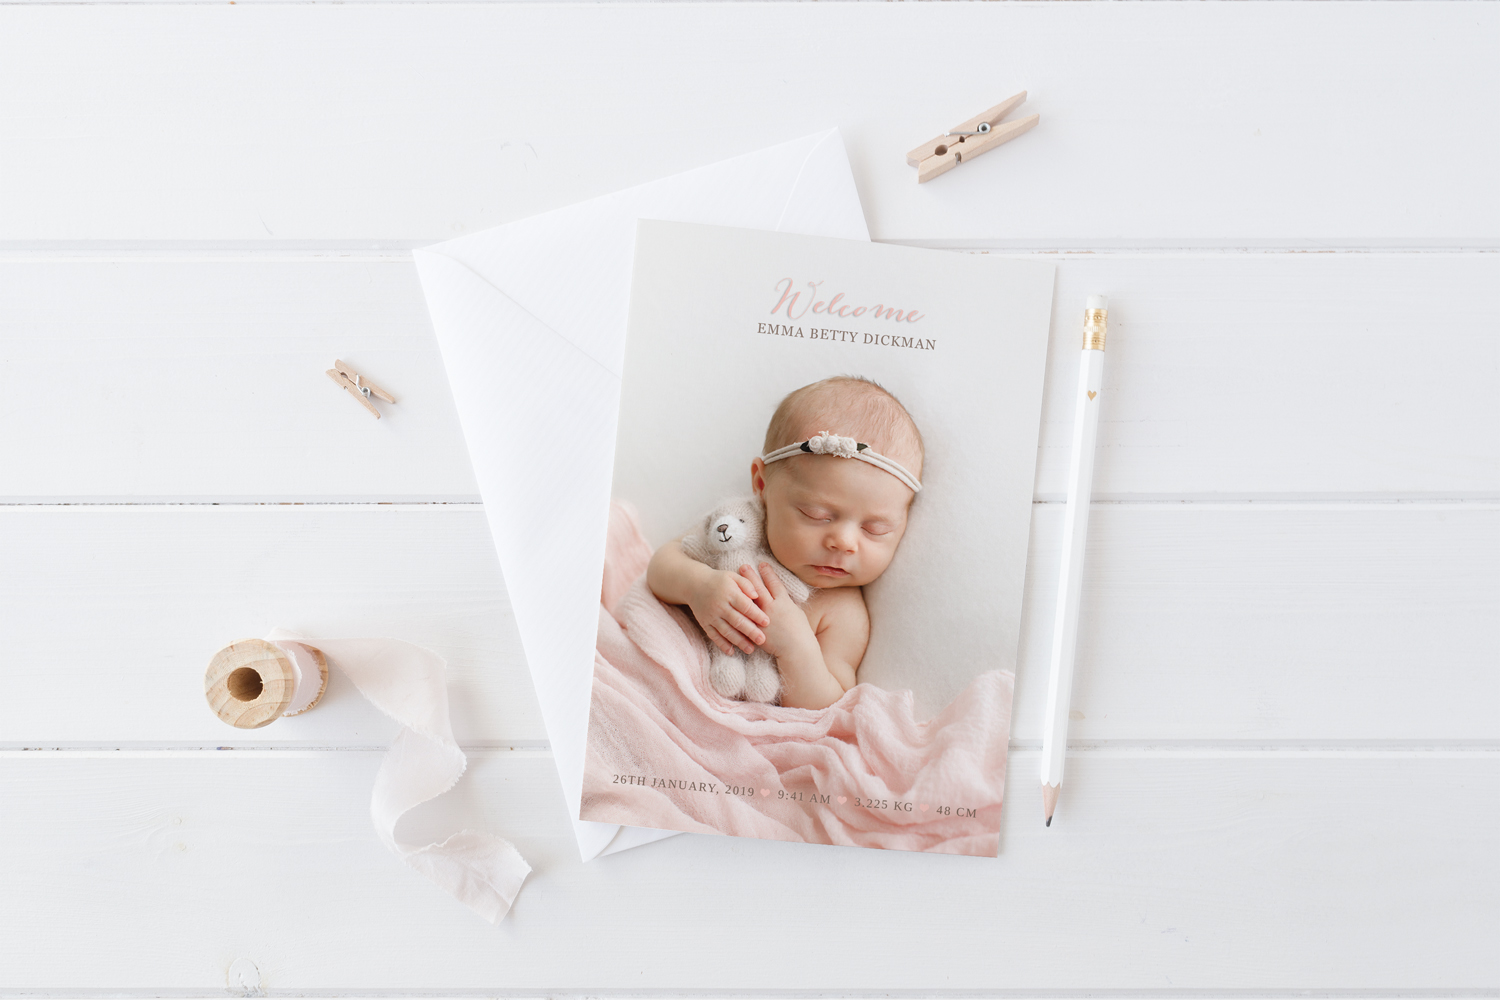 BIRTH ANNOUNCEMENT CARDS - Personalised birth/thank you cards. A beautiful and personalised way to introduce your bundle of joy! Set of 10 cards with white envelopes.From as little as $2.50 per card.